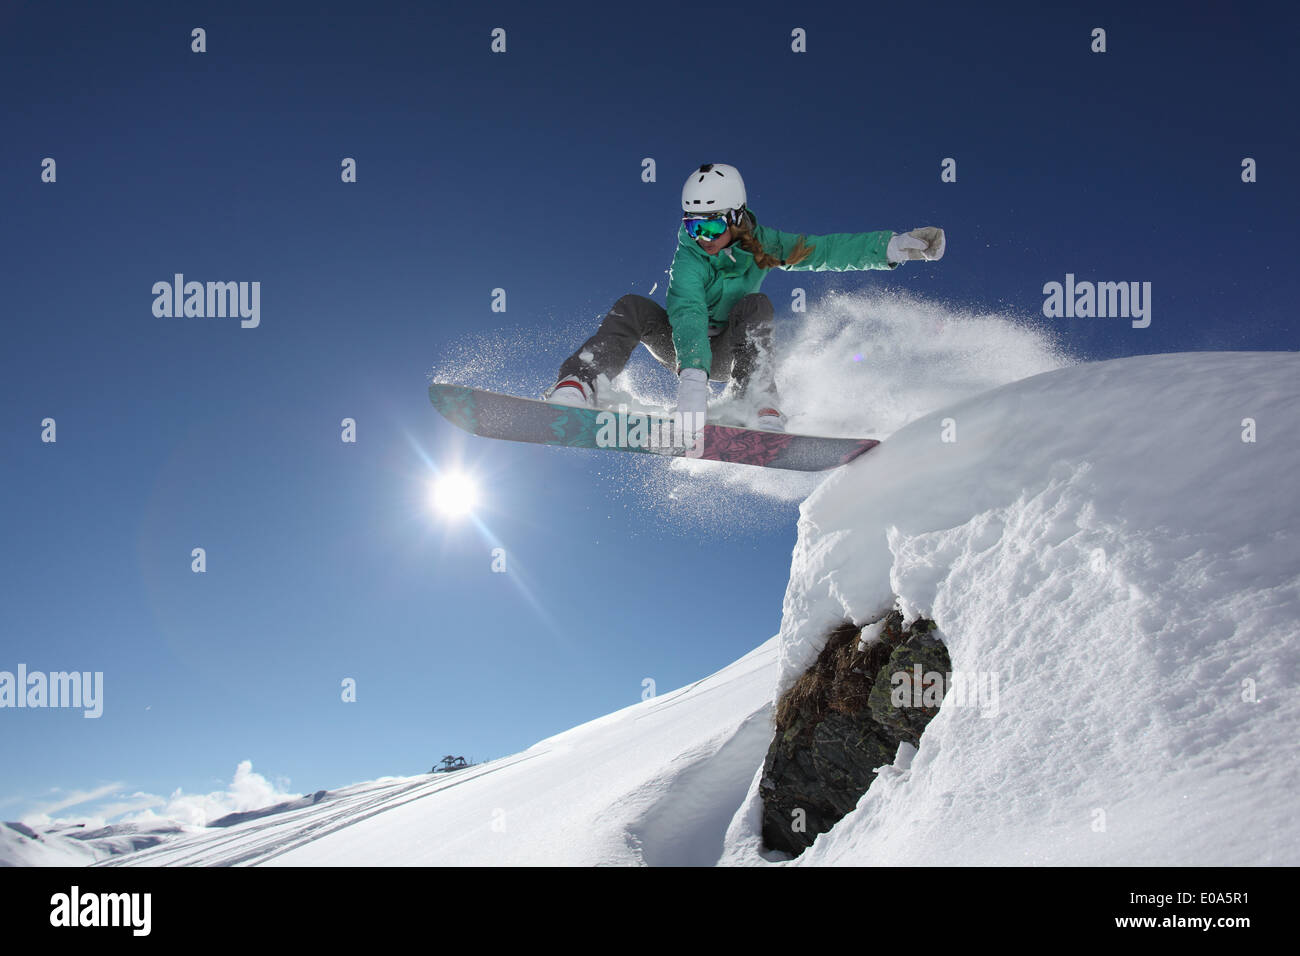 Young woman jumping with snowboard, Mayrhofen, Tyrol, Austria - Stock Image